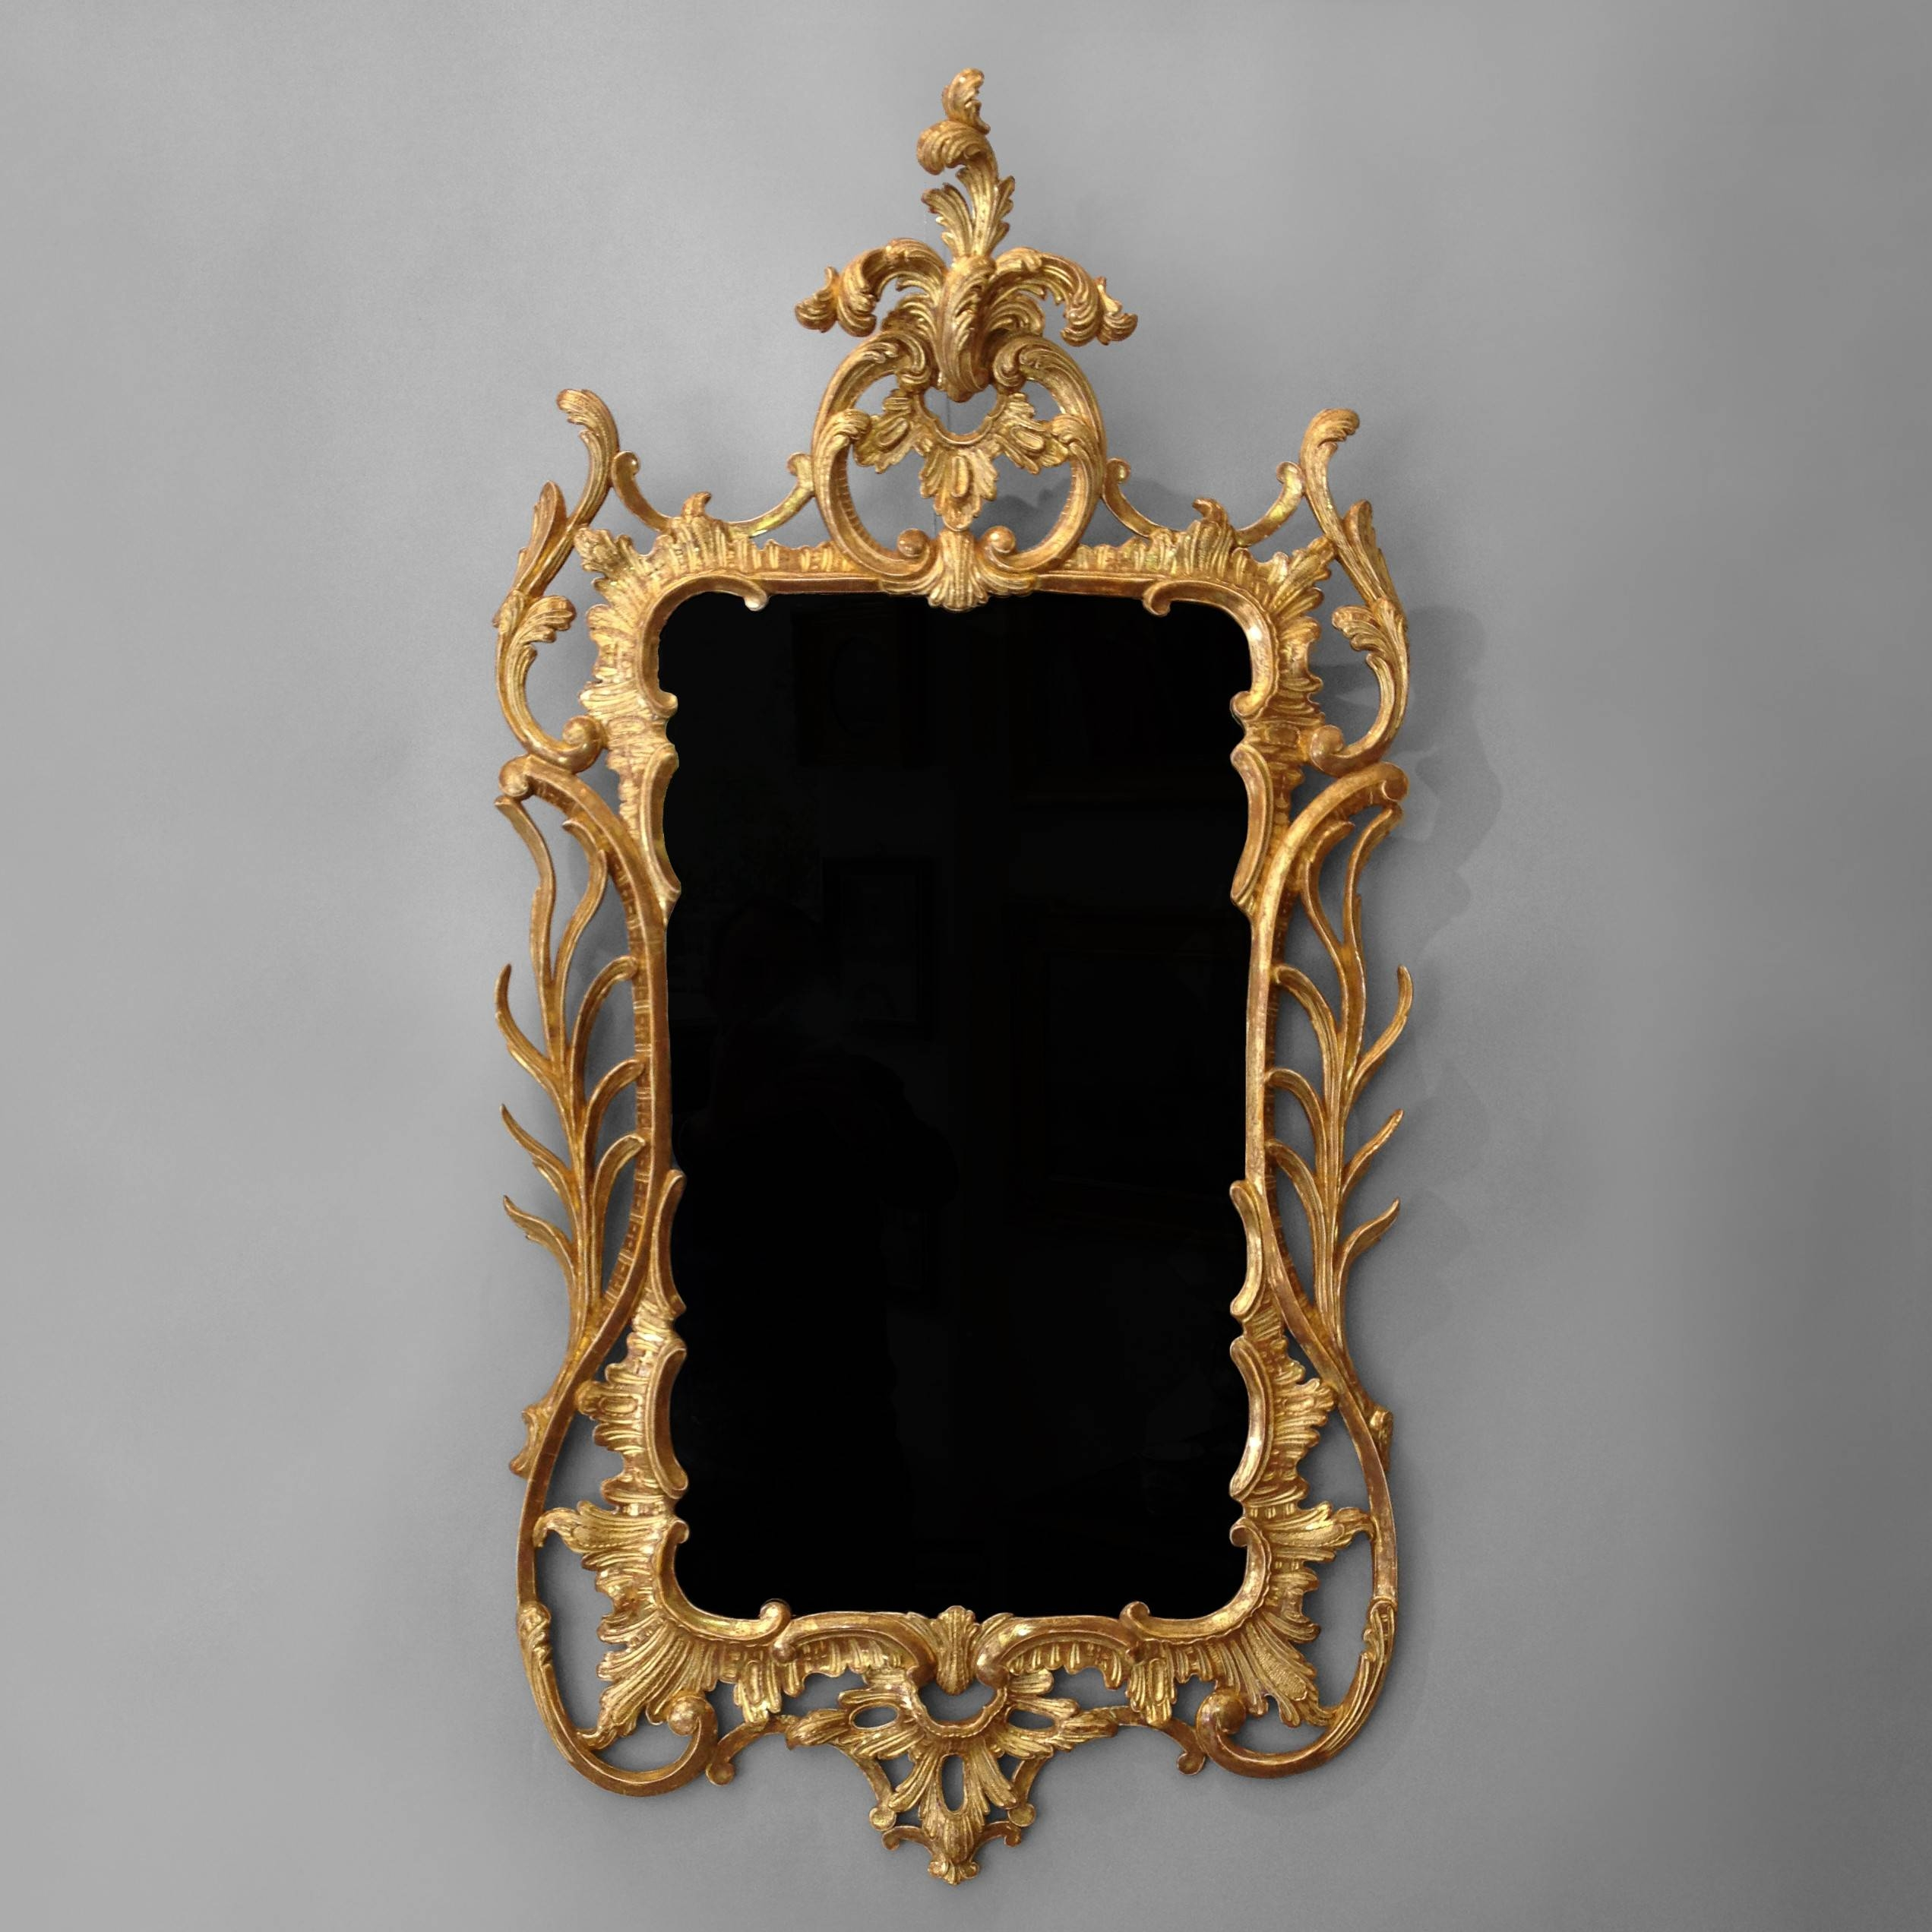 A George Iii Giltwood Rococo Mirror - Timothy Langston intended for Gold Rococo Mirrors (Image 10 of 25)